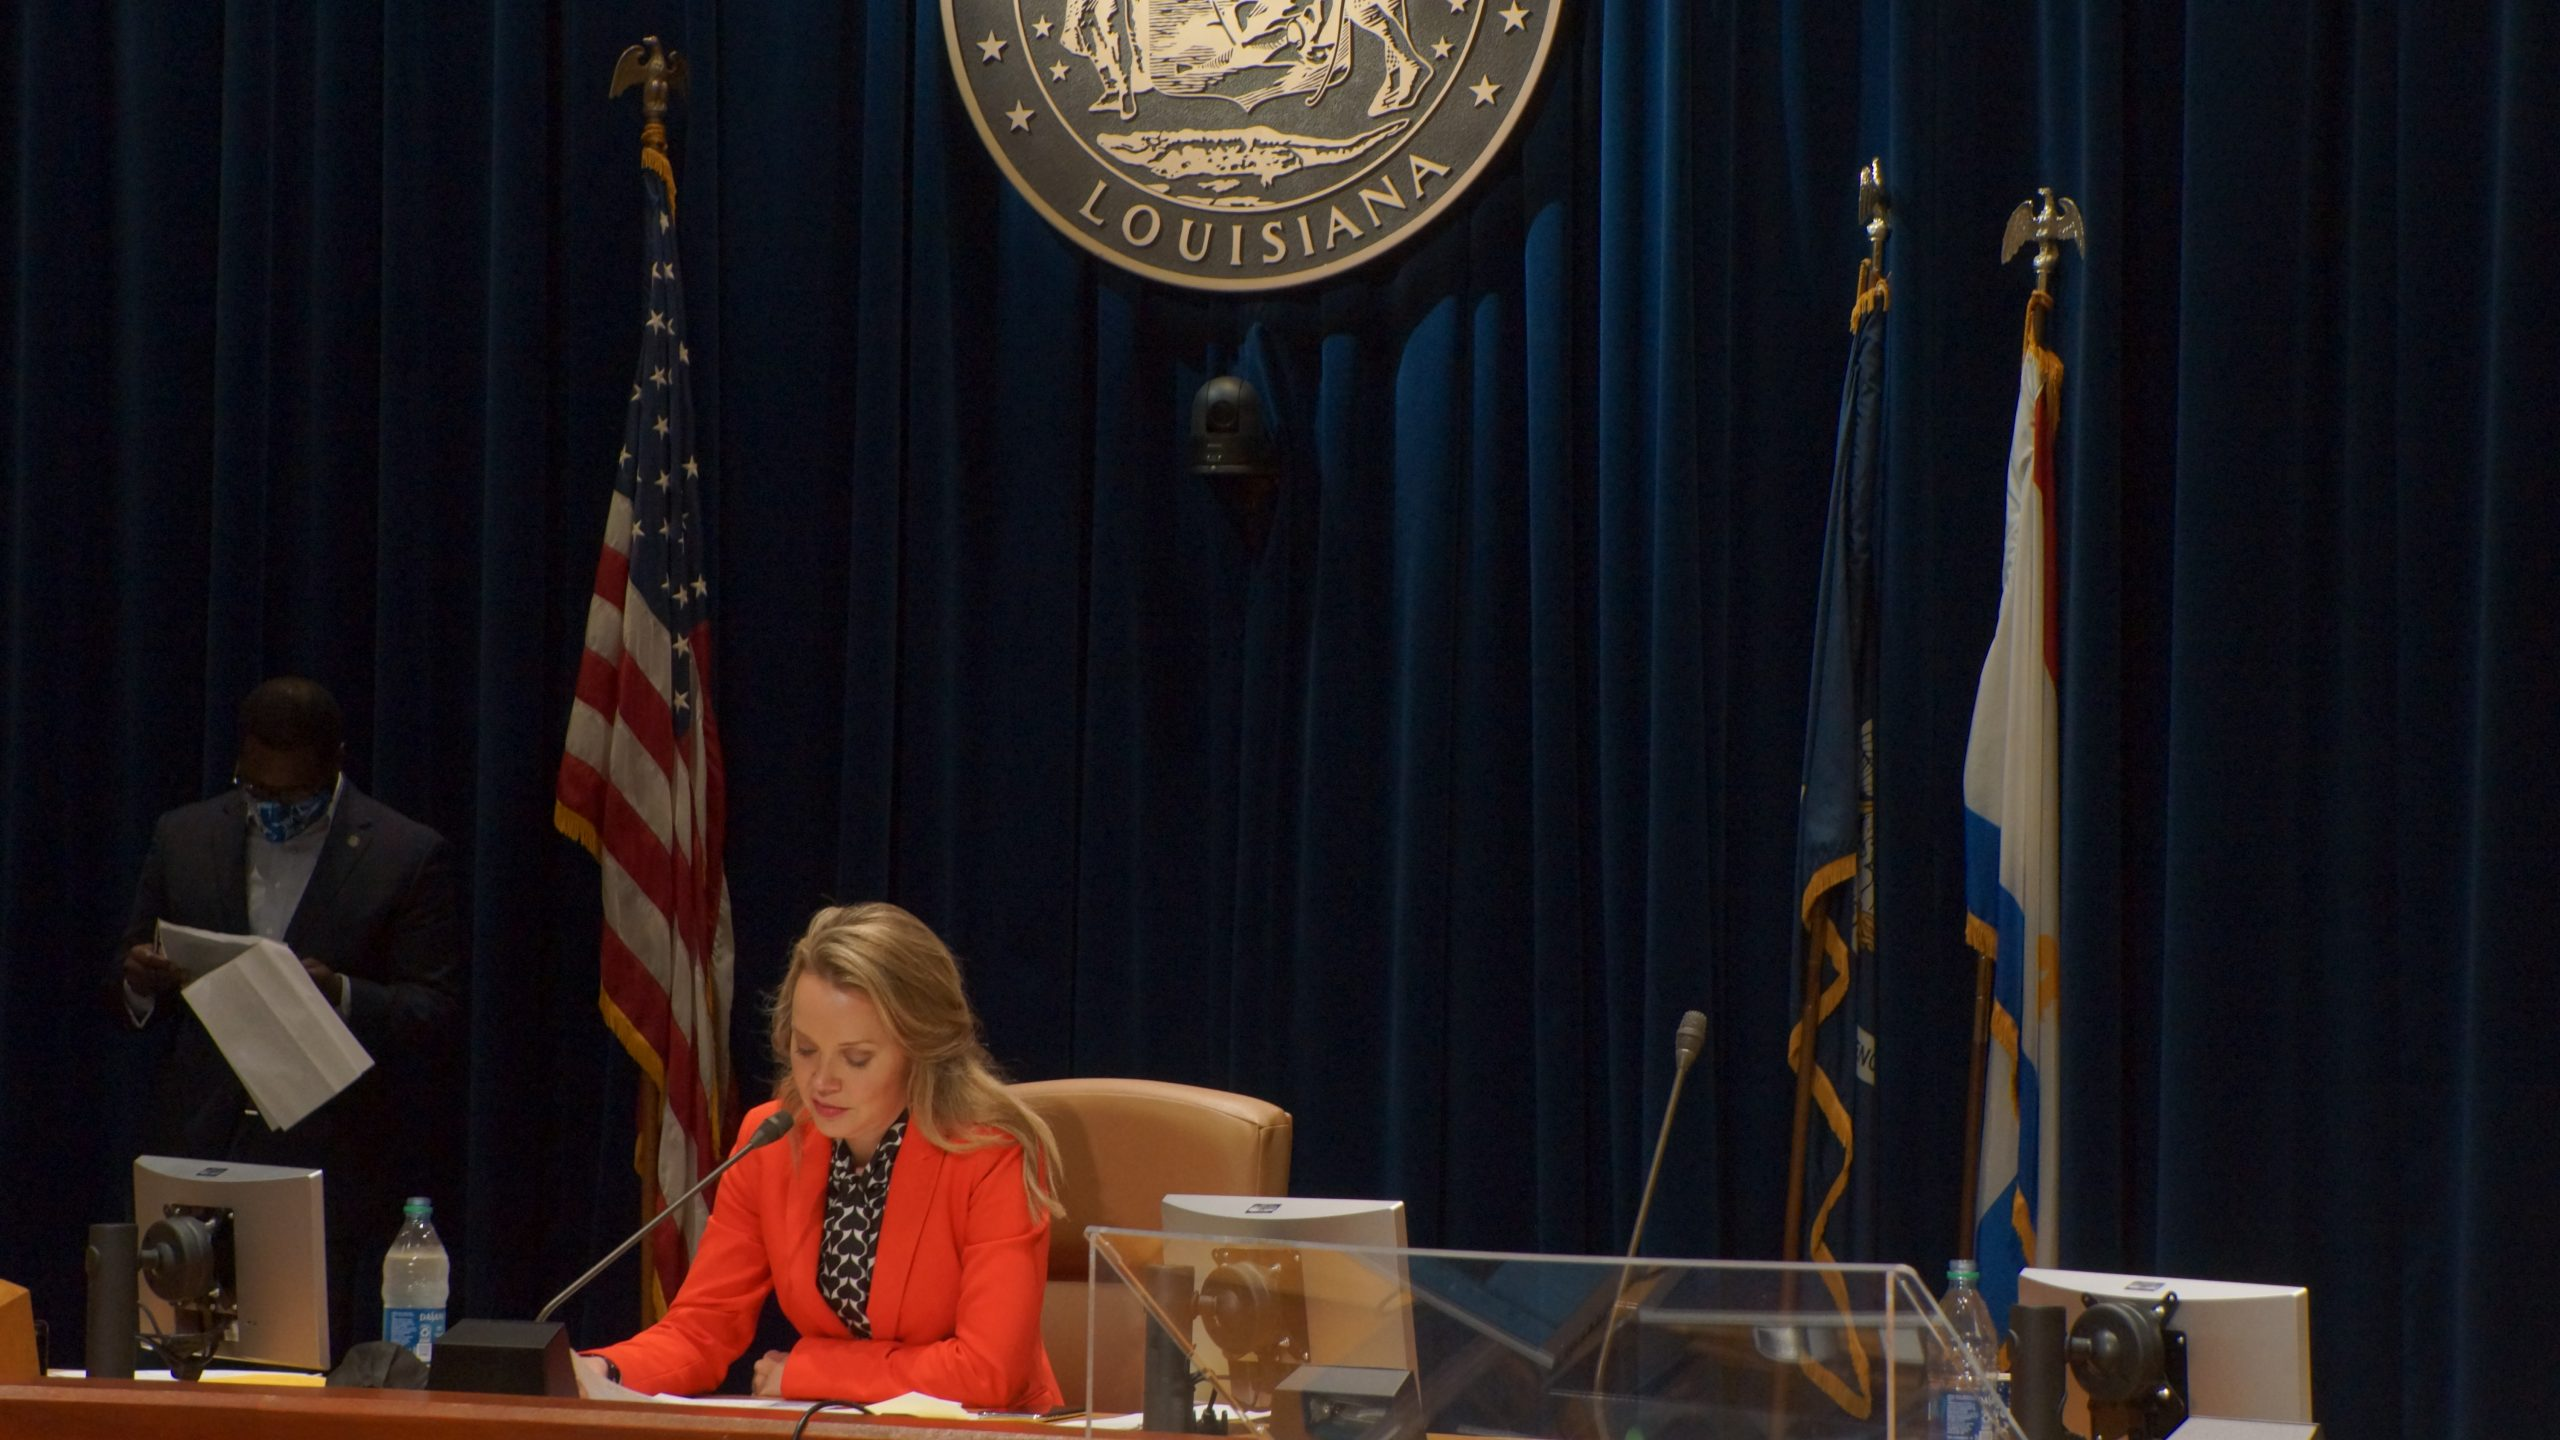 City Council passes ordinance effectively removing all penalties for simple marijuana possession under city law, pardons roughly 10,000 past cases